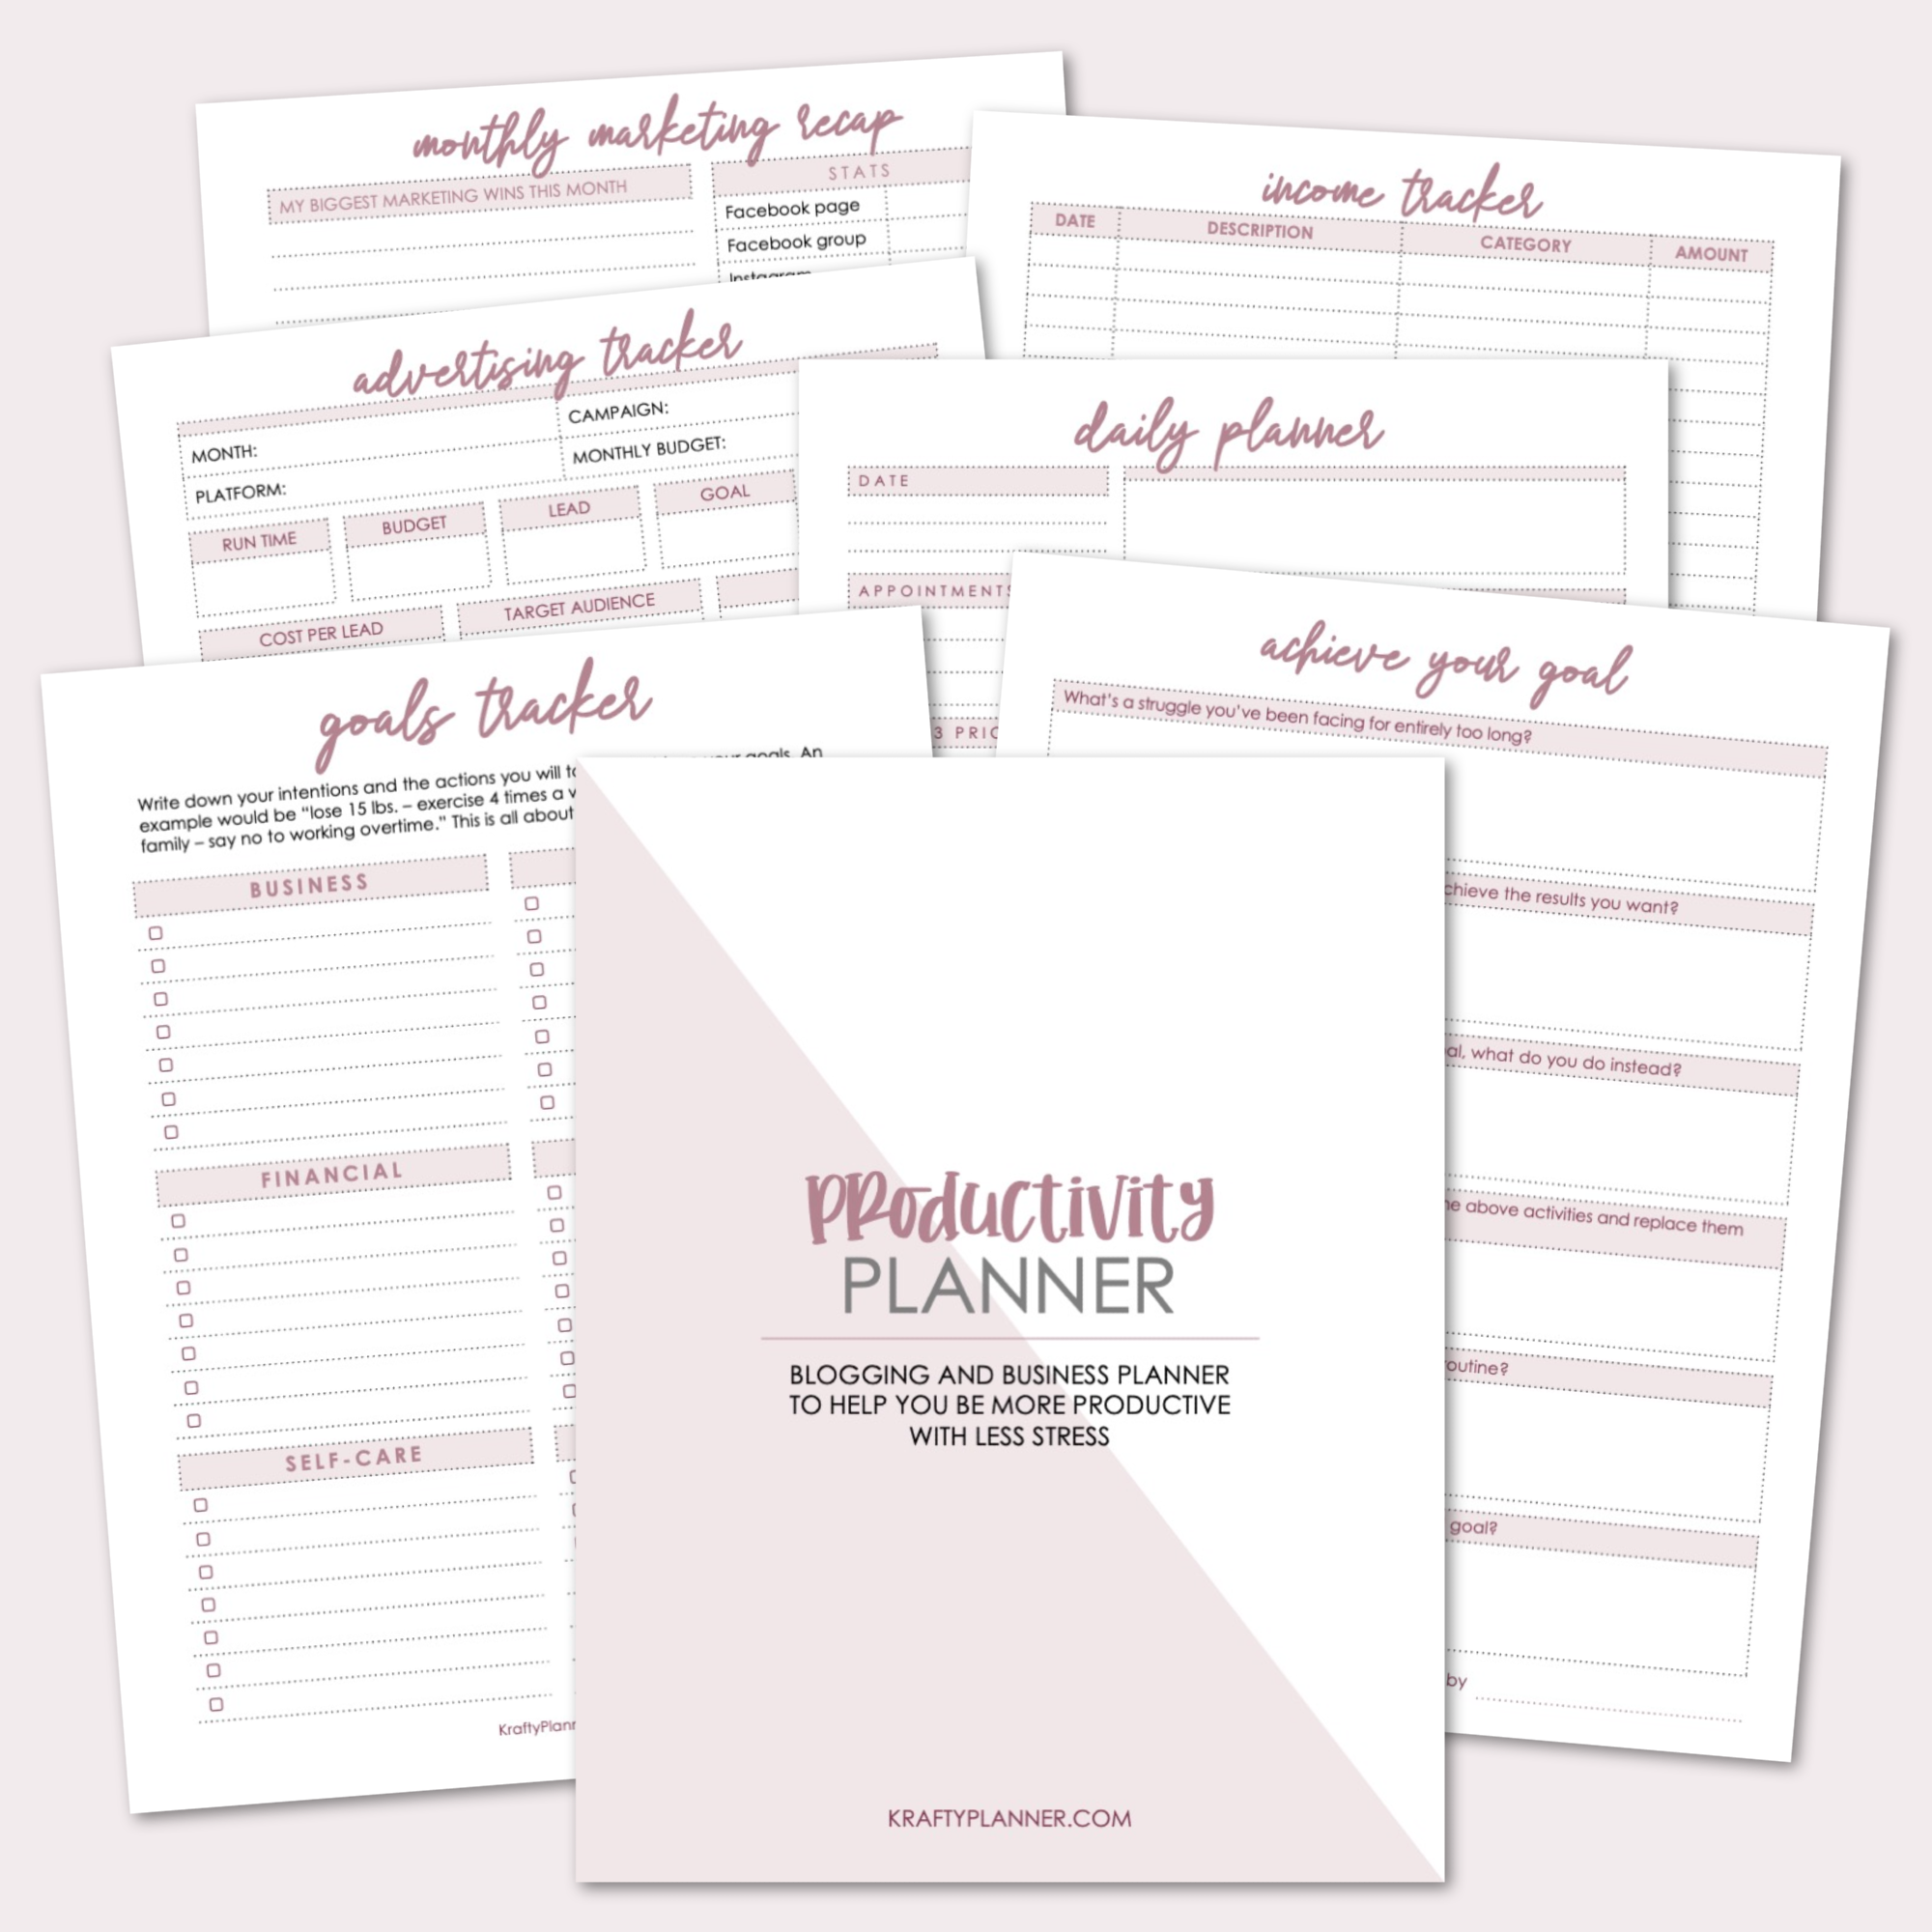 Productivity Planner - Blog and Business Planner